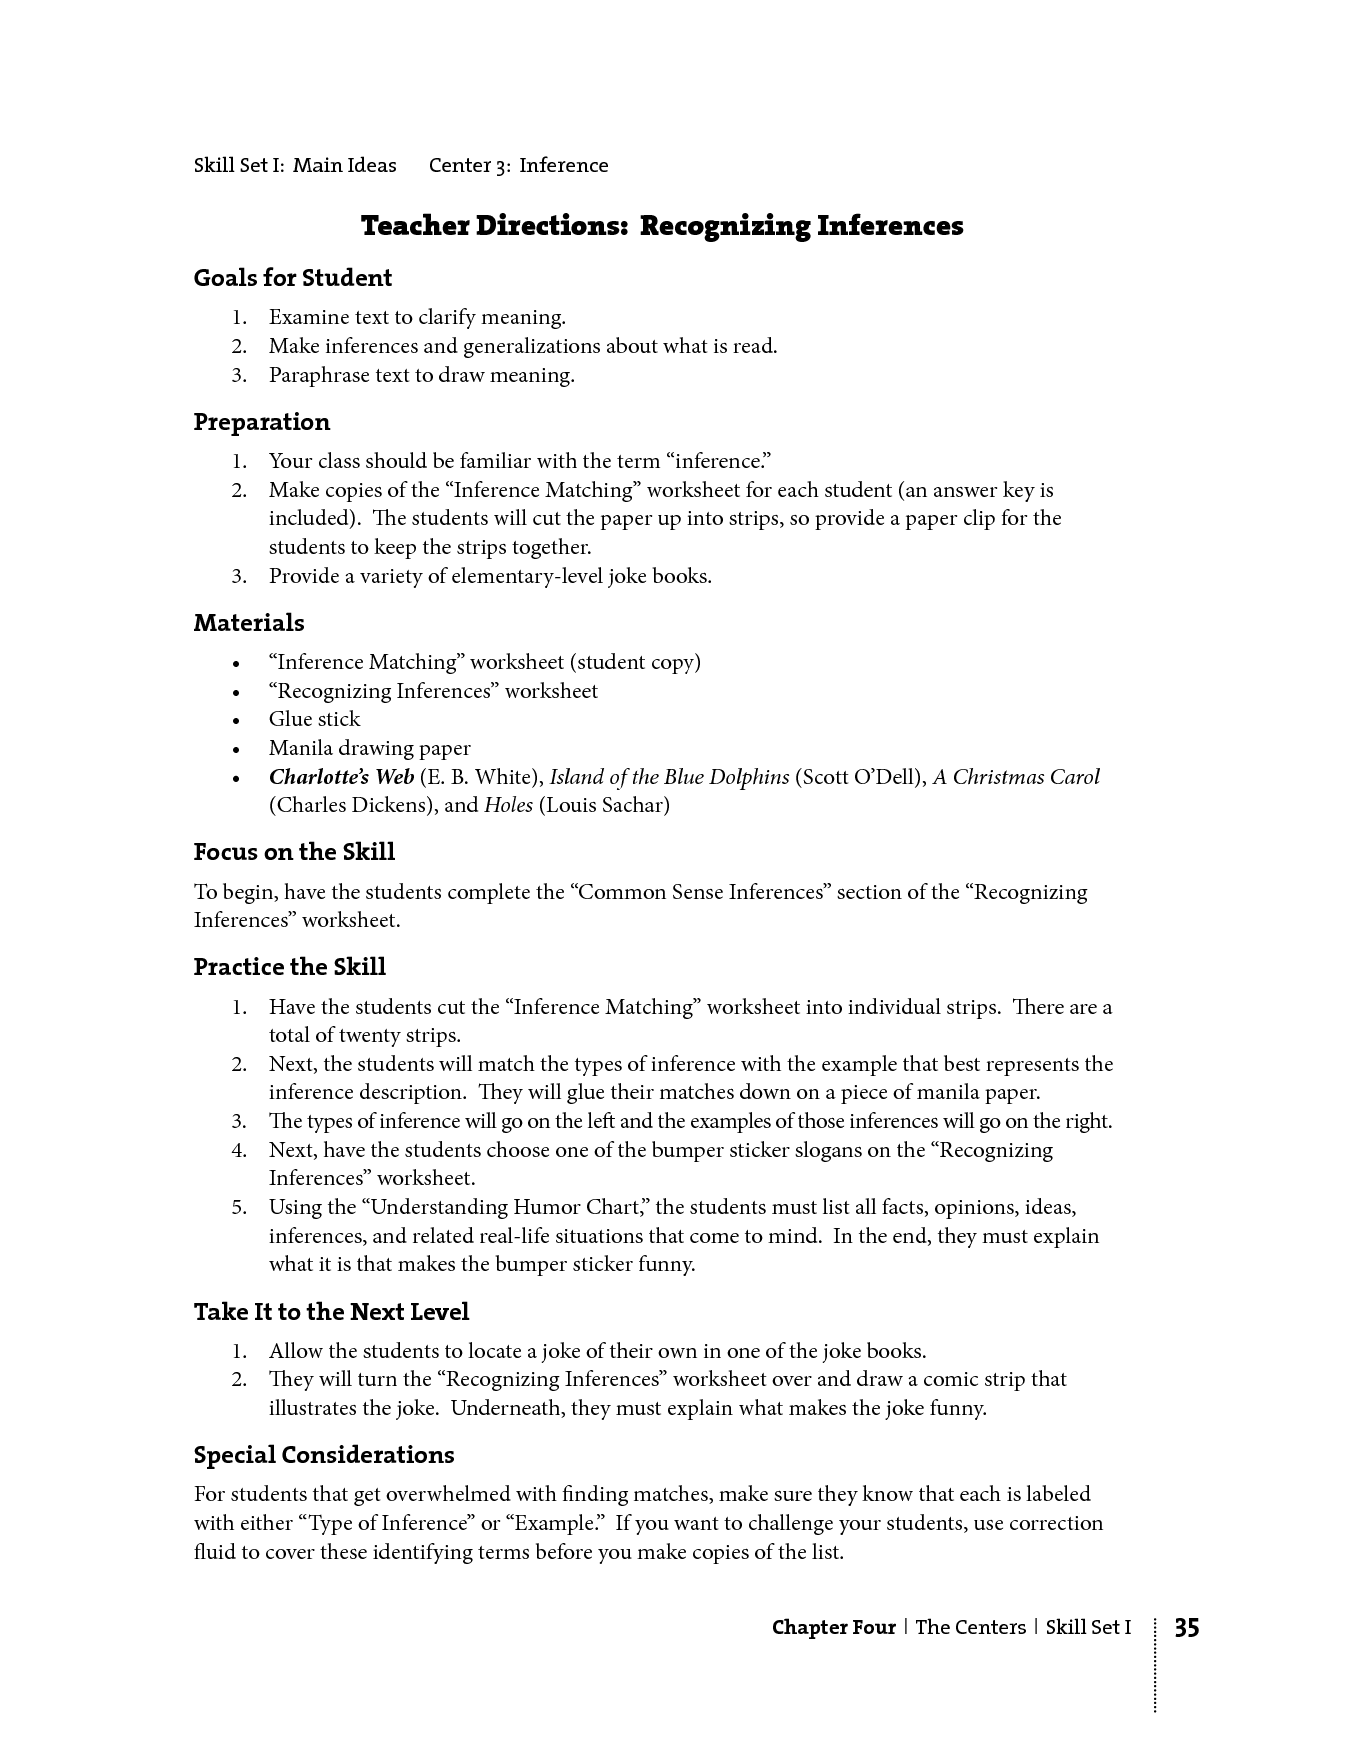 13 Best Images of Inferences Worksheets With Answers  Inference Worksheets 5th Grade, Printable